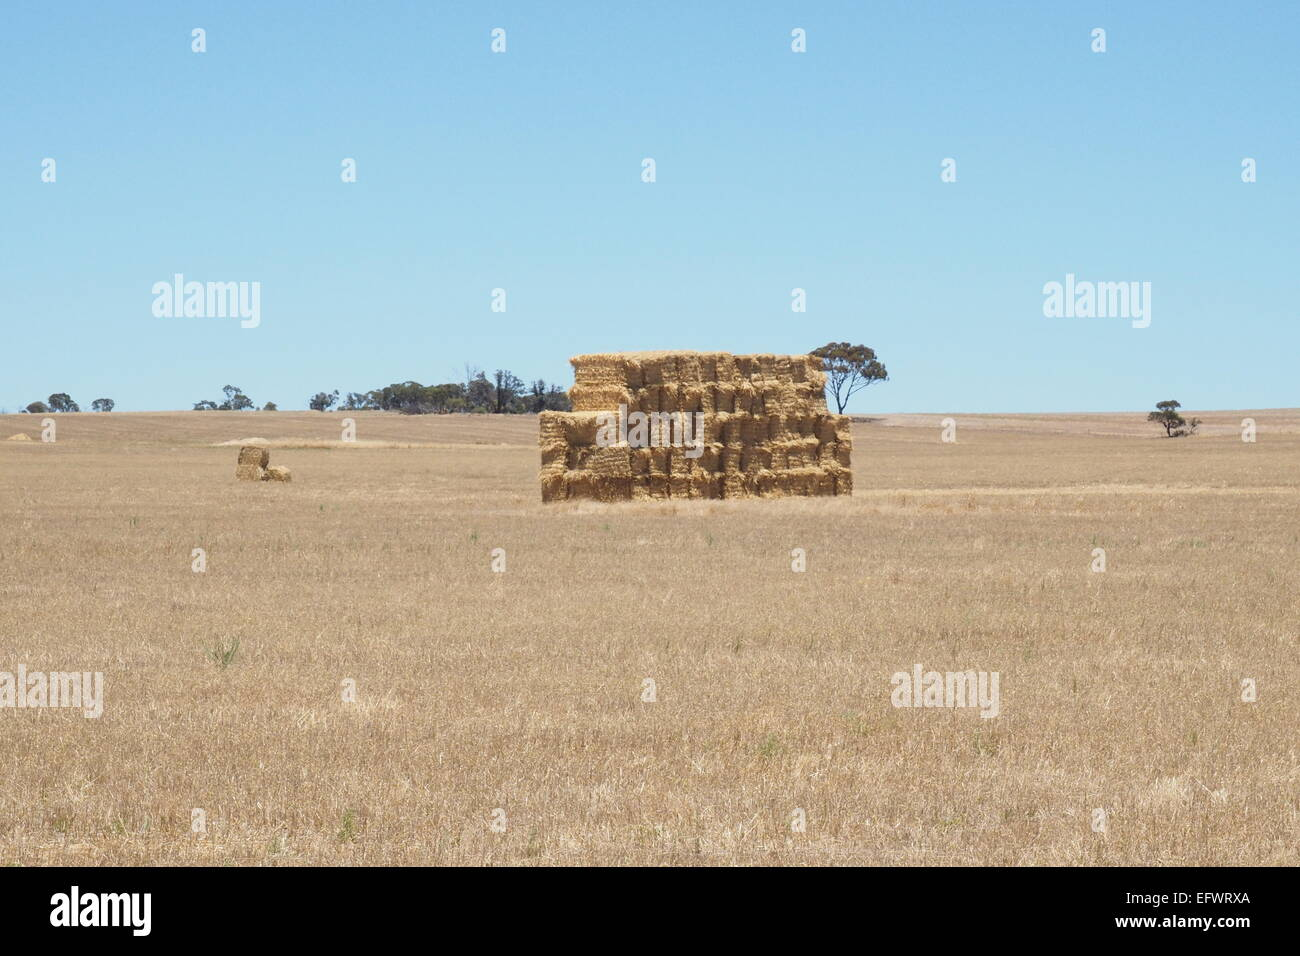 Haystack in the middle of a wheat field. - Stock Image